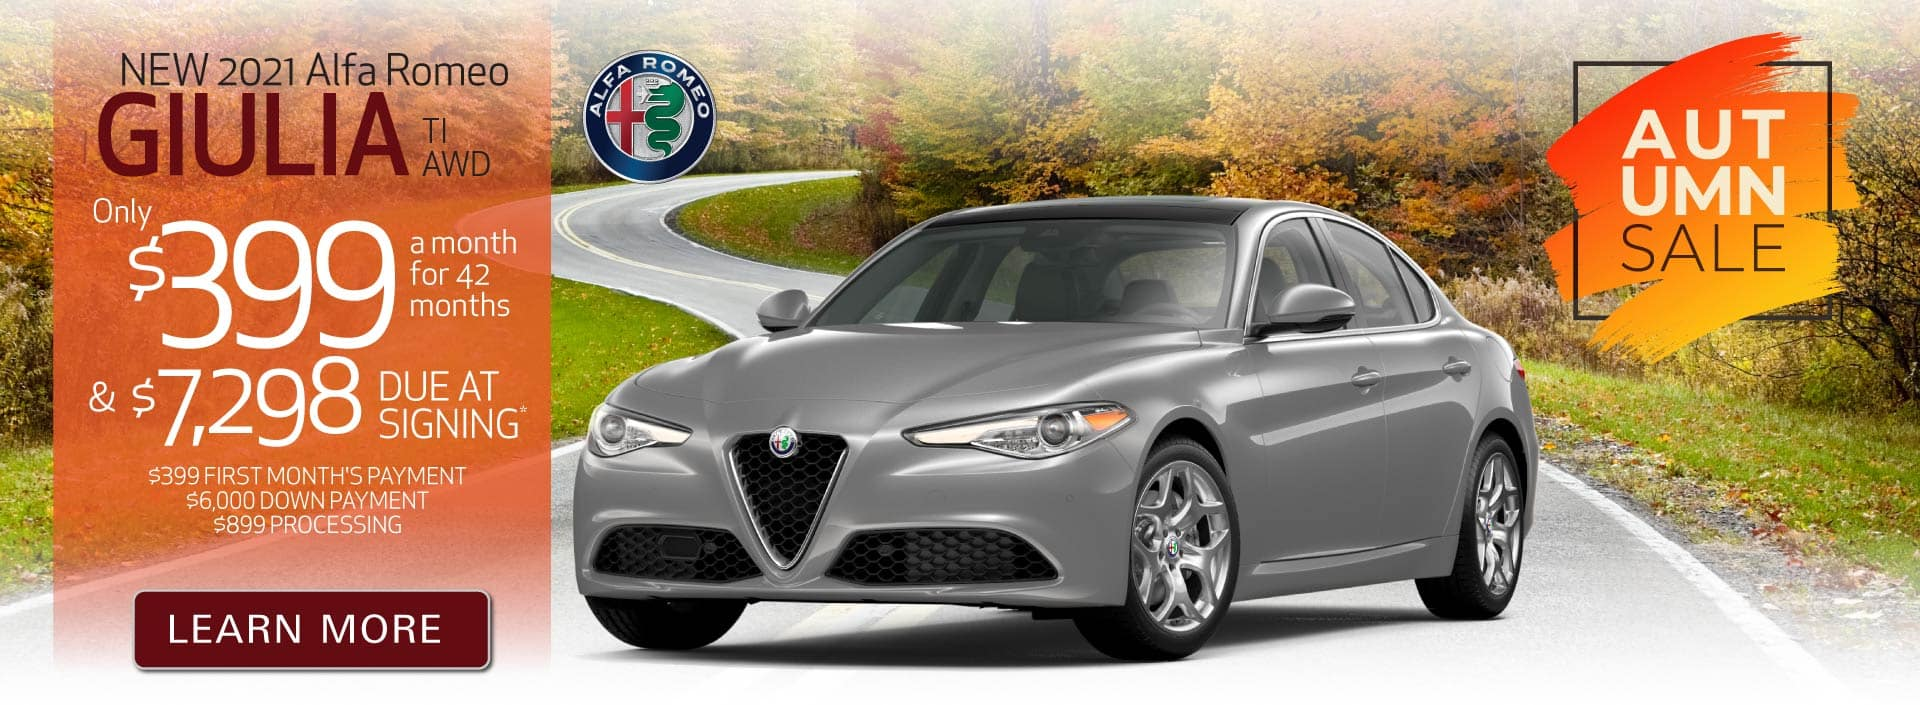 New 2021 Giulia only $399 a month | Act Now